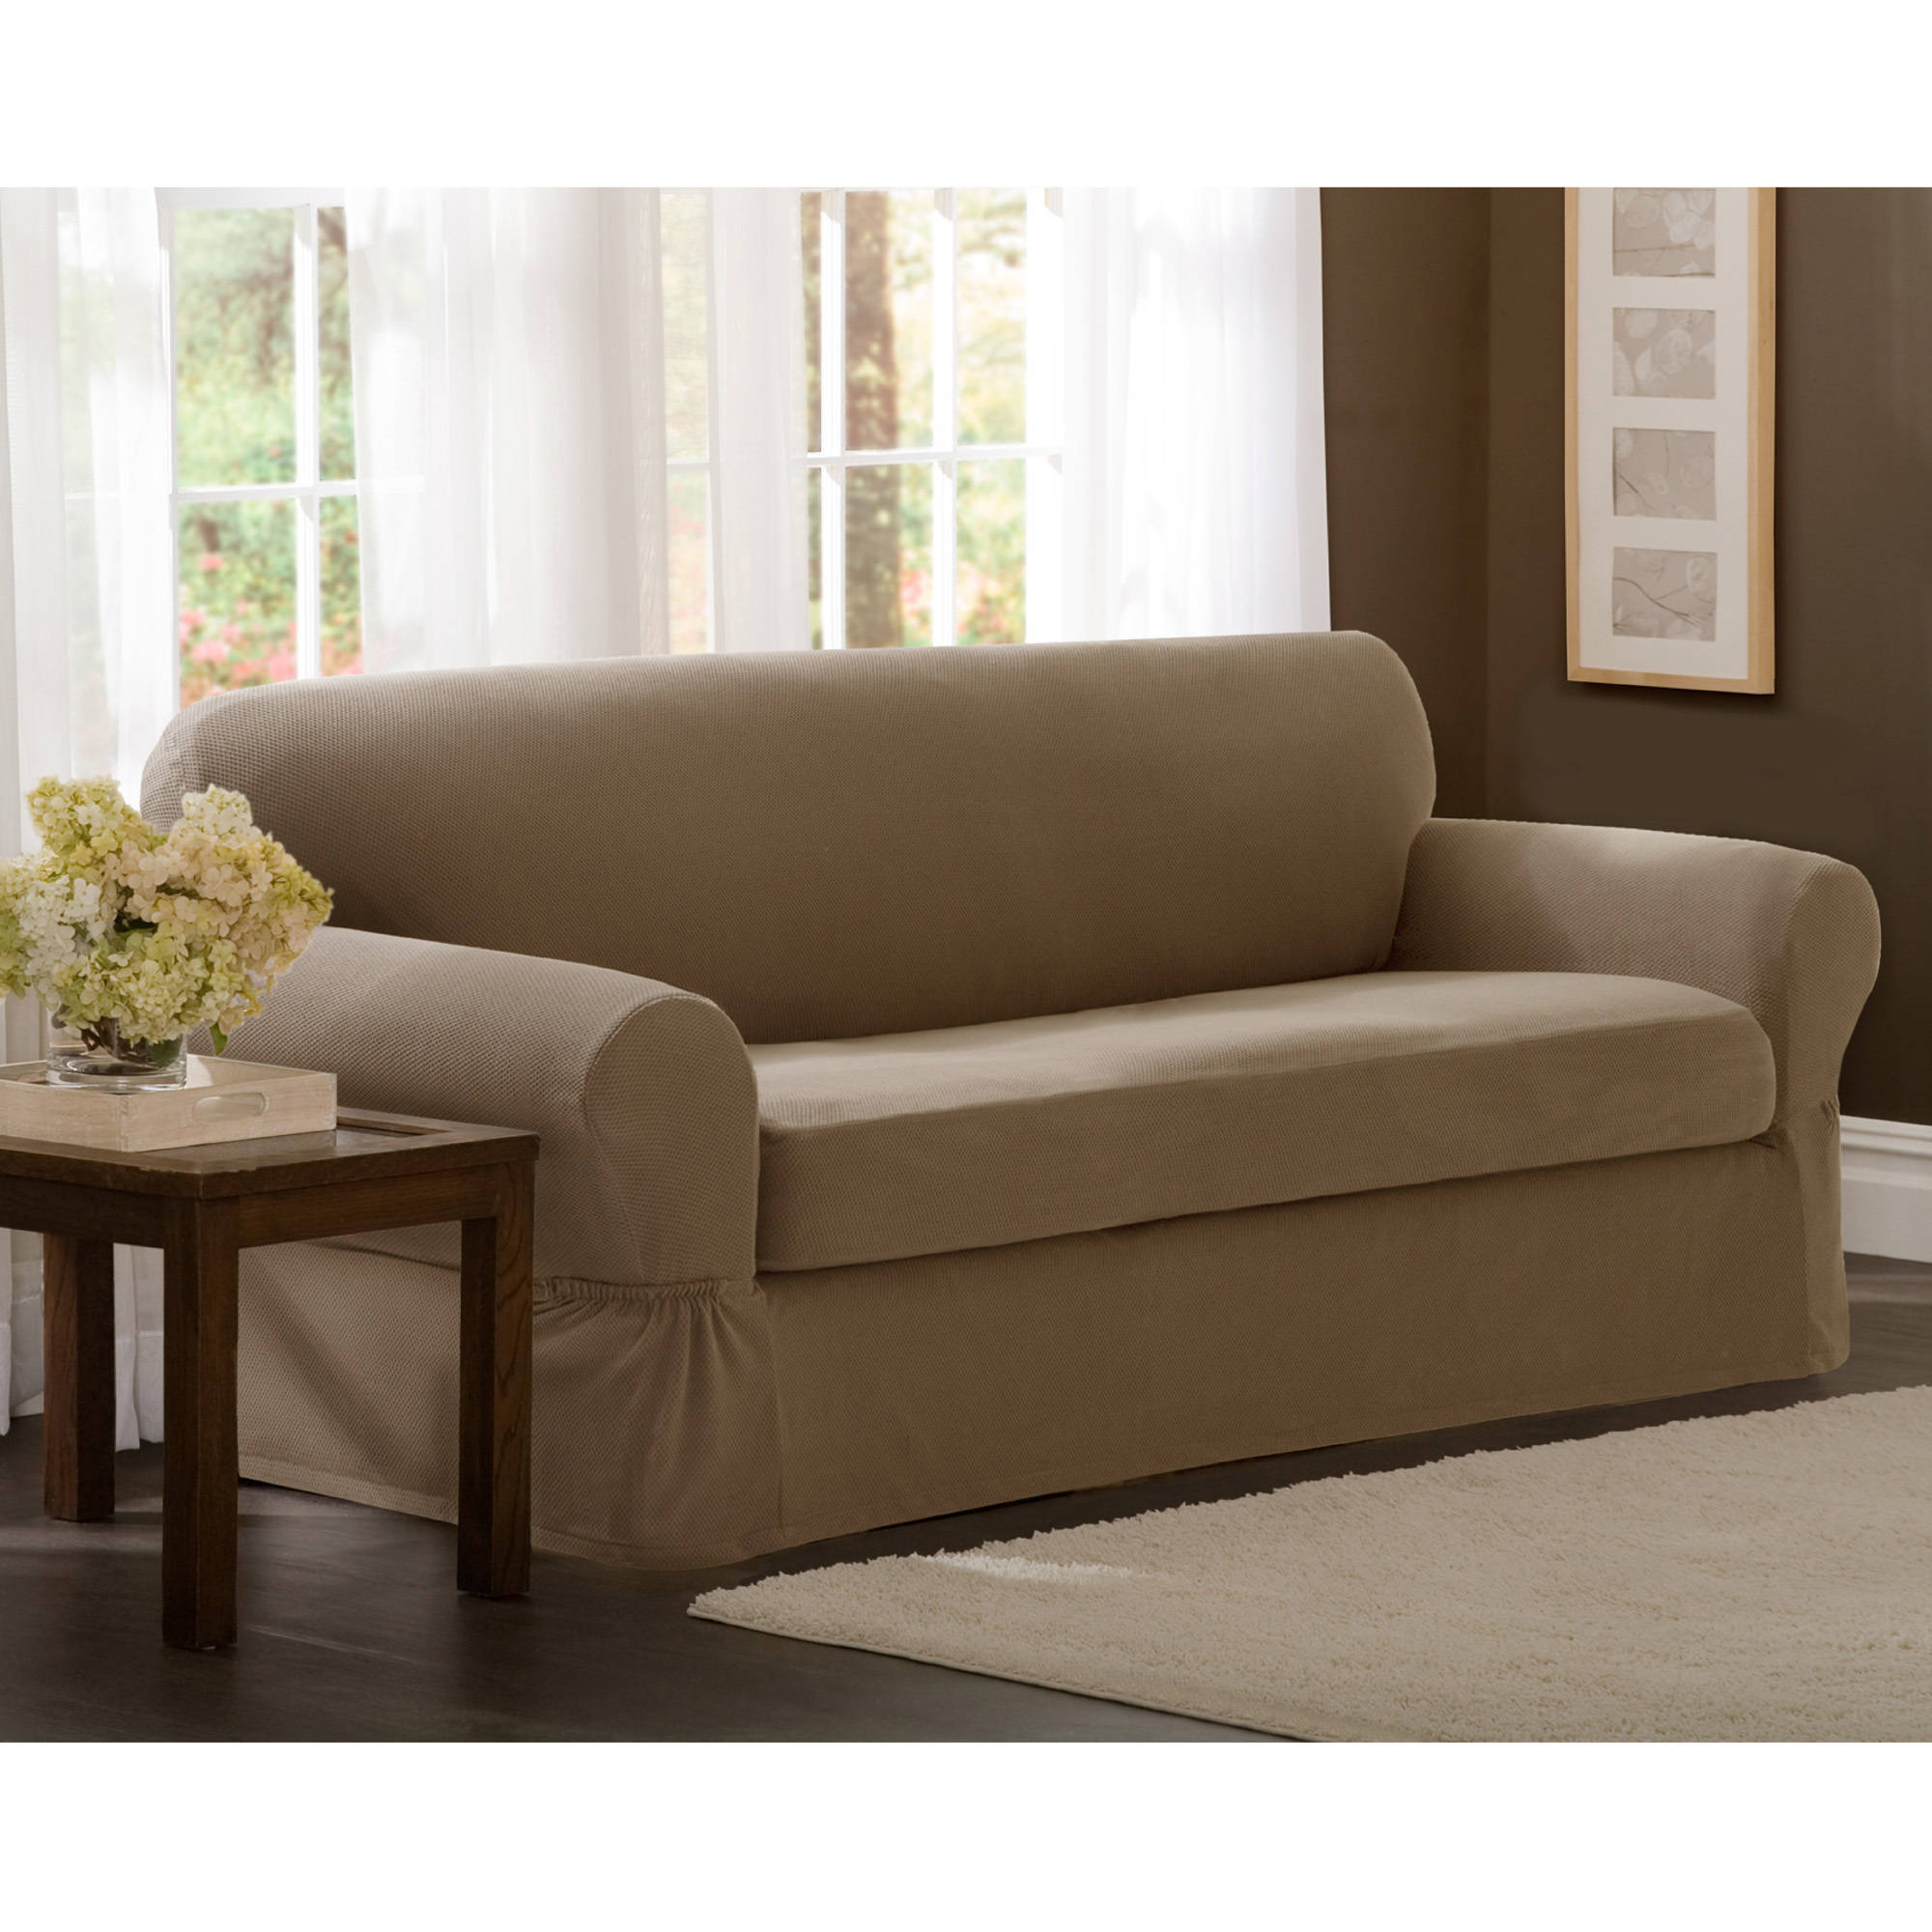 Dual Reclining Loveseat Cover Quick